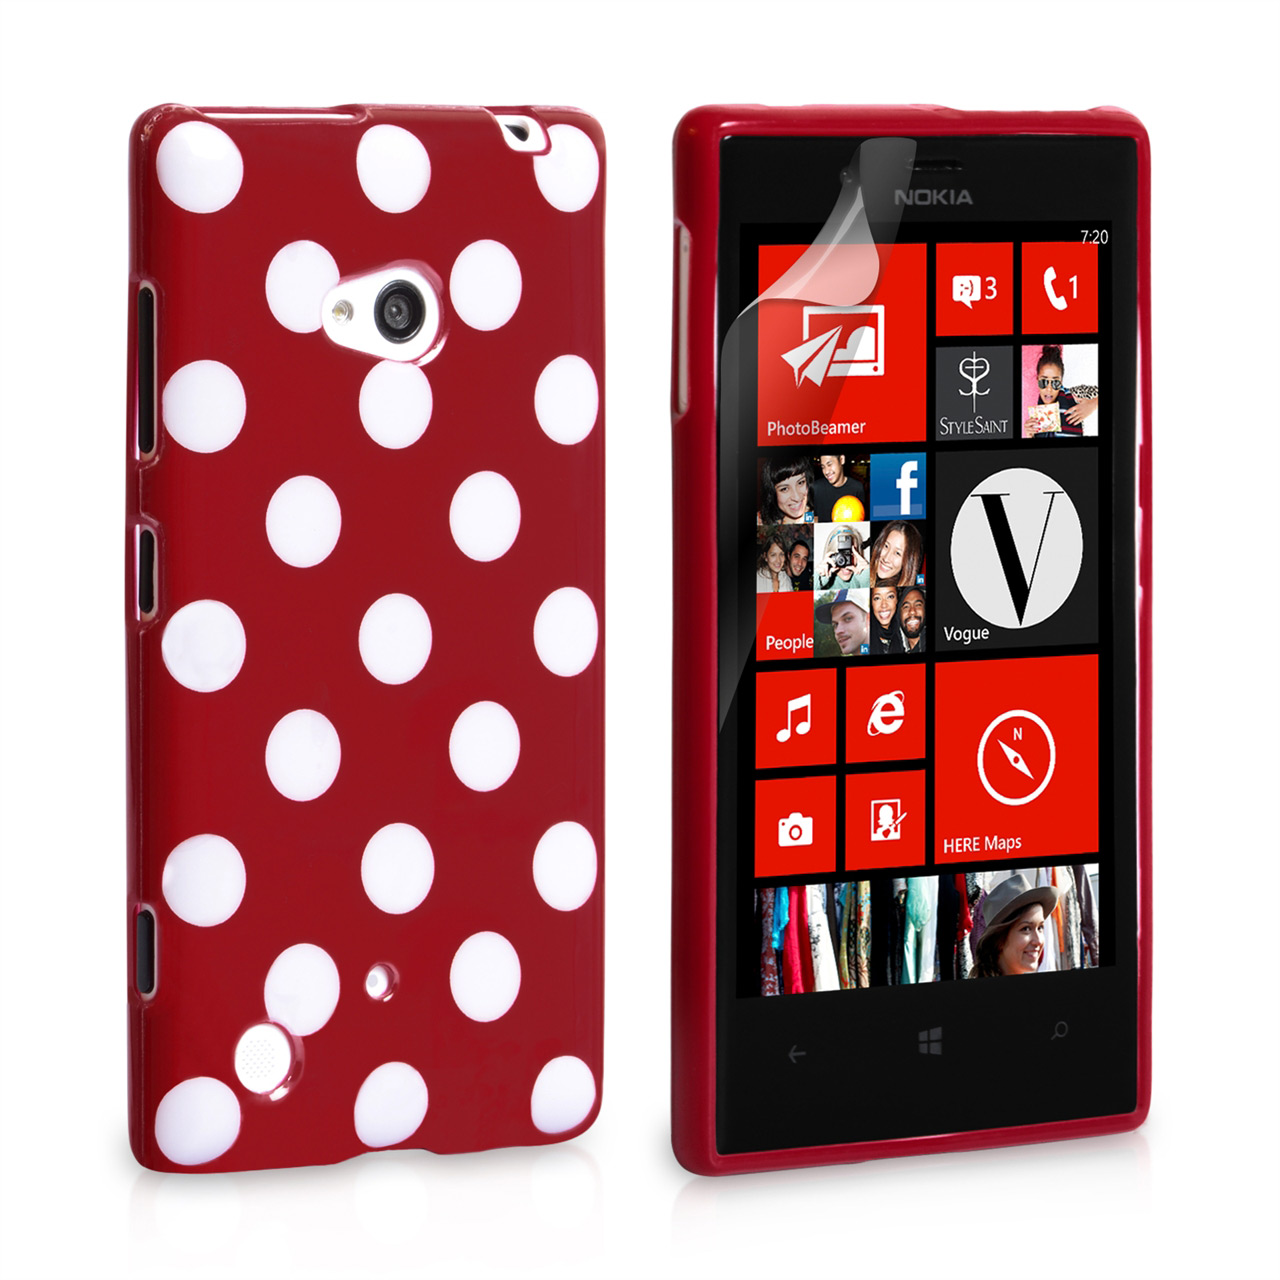 YouSave Accessories Nokia Lumia 720 Polka Dot Gel Case - Red